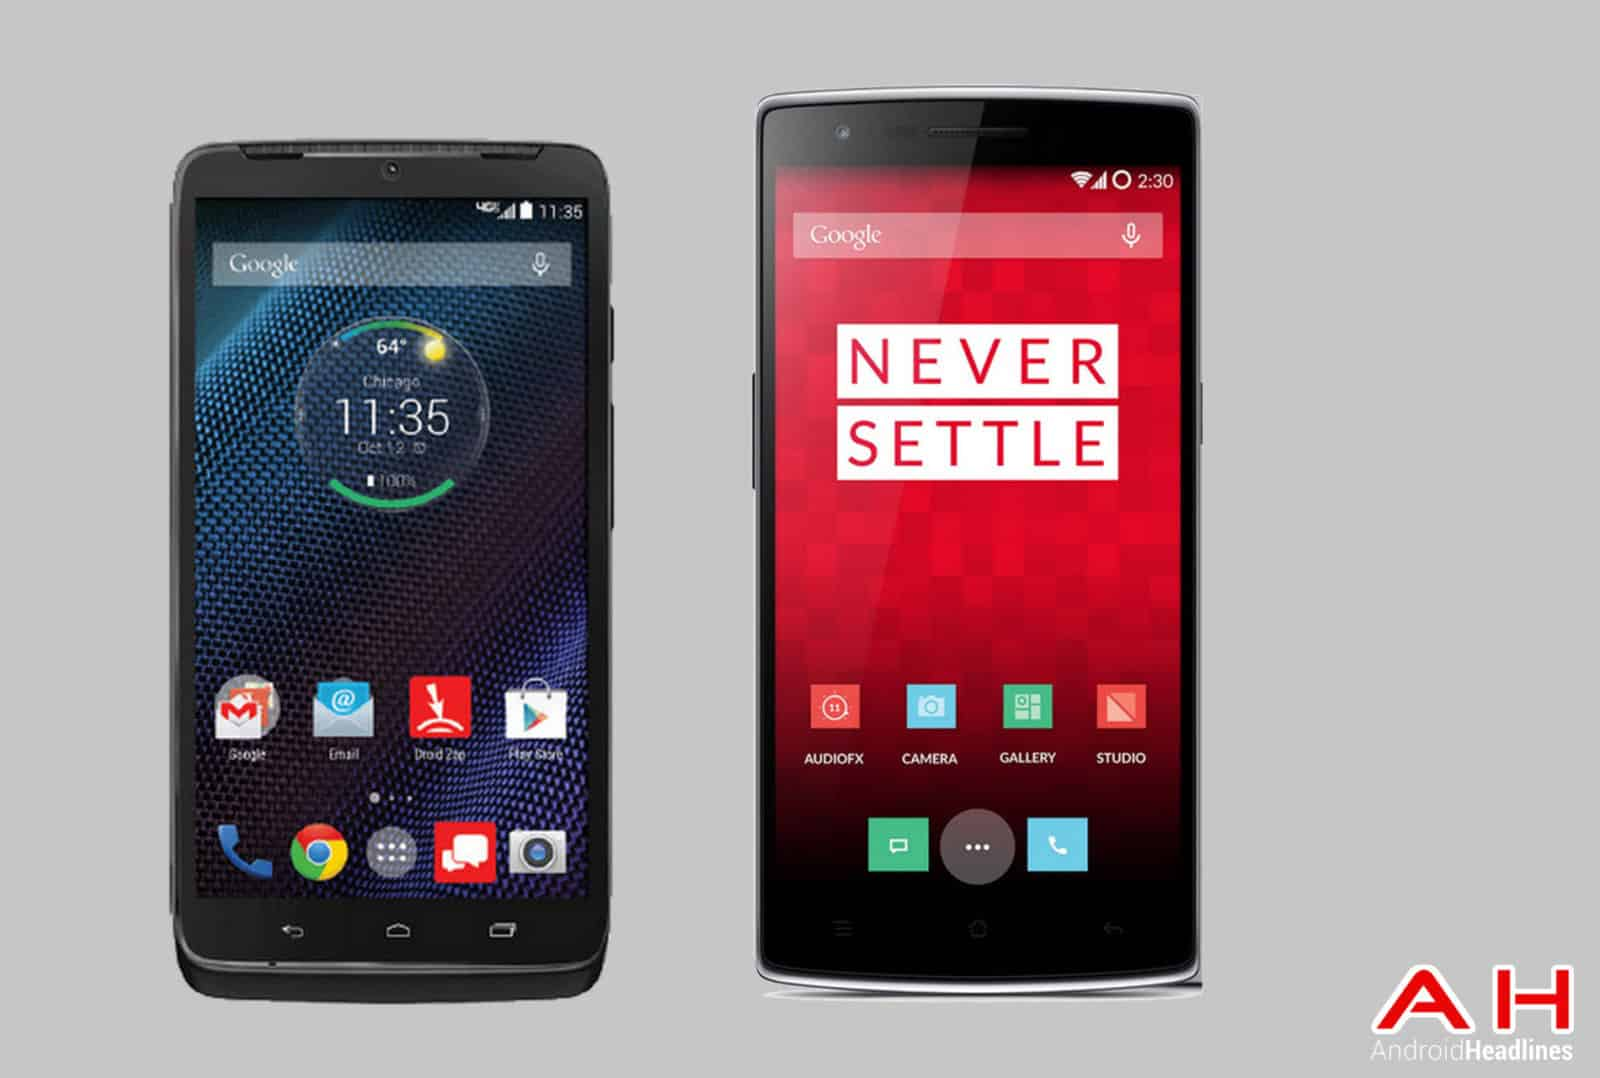 motorola droid phones. phone comparisons: motorola droid turbo vs oneplus one phones